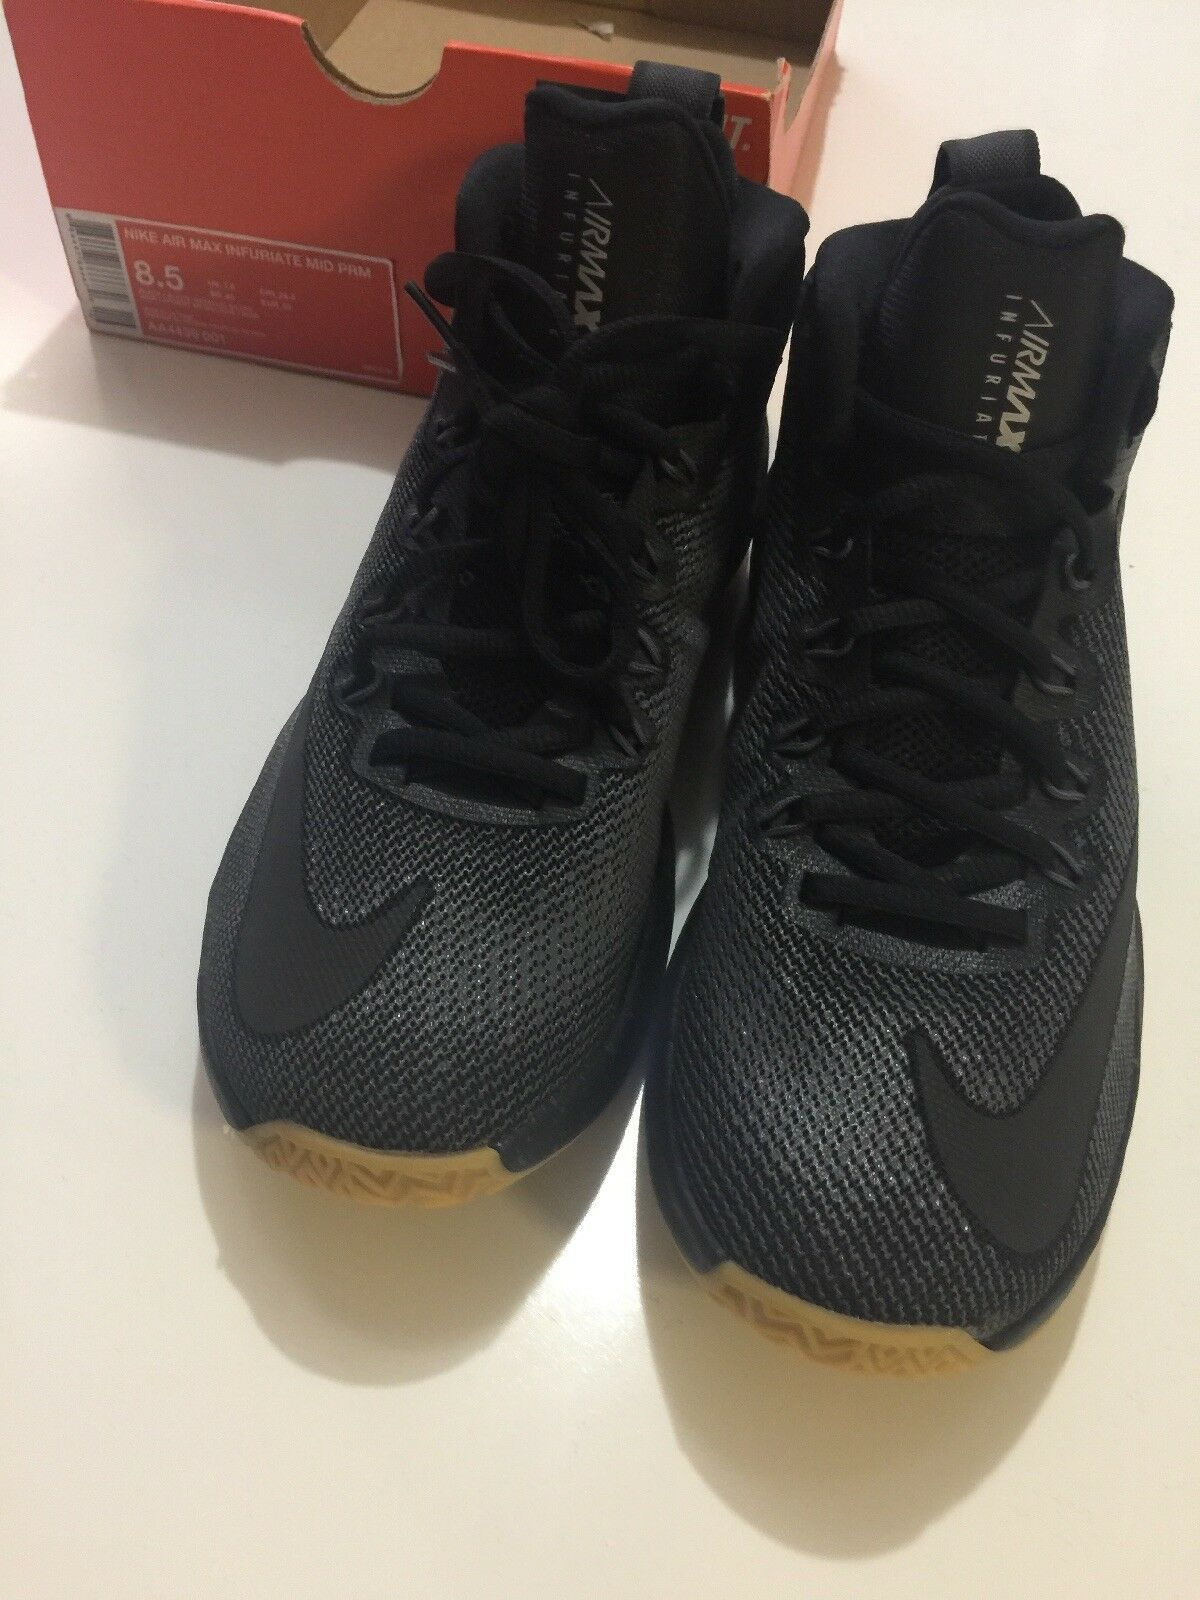 NIKE AIR MAX INFURIATE MID PRM MENS SHOES AA4439 001 Size 8.5 WITH BOX No Top